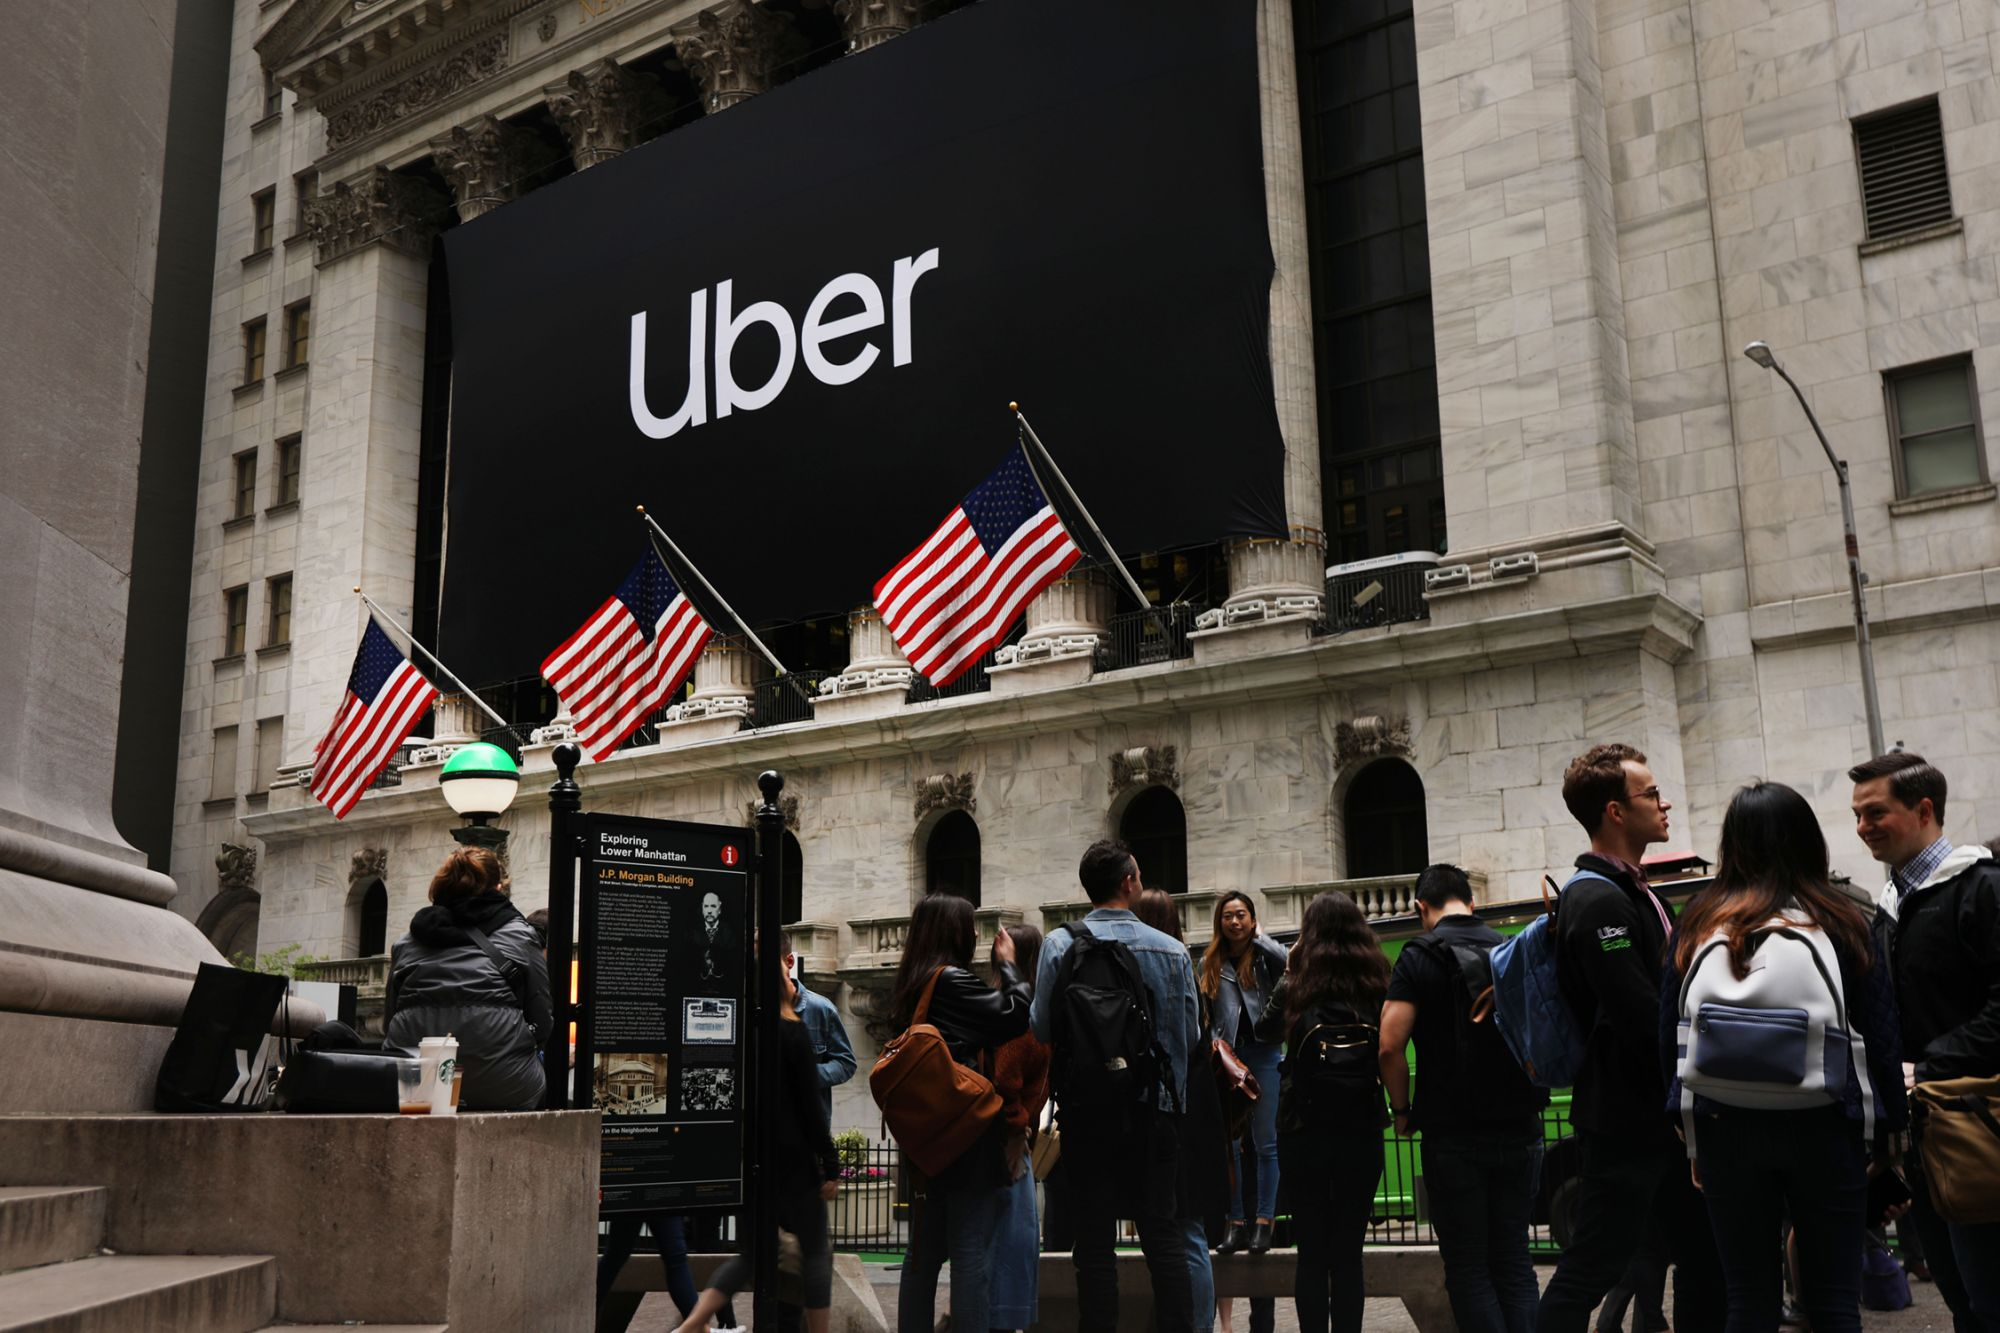 Uber Stock Finally Surpasses Its IPO Price as Stock Market Soars for Second Straight Day